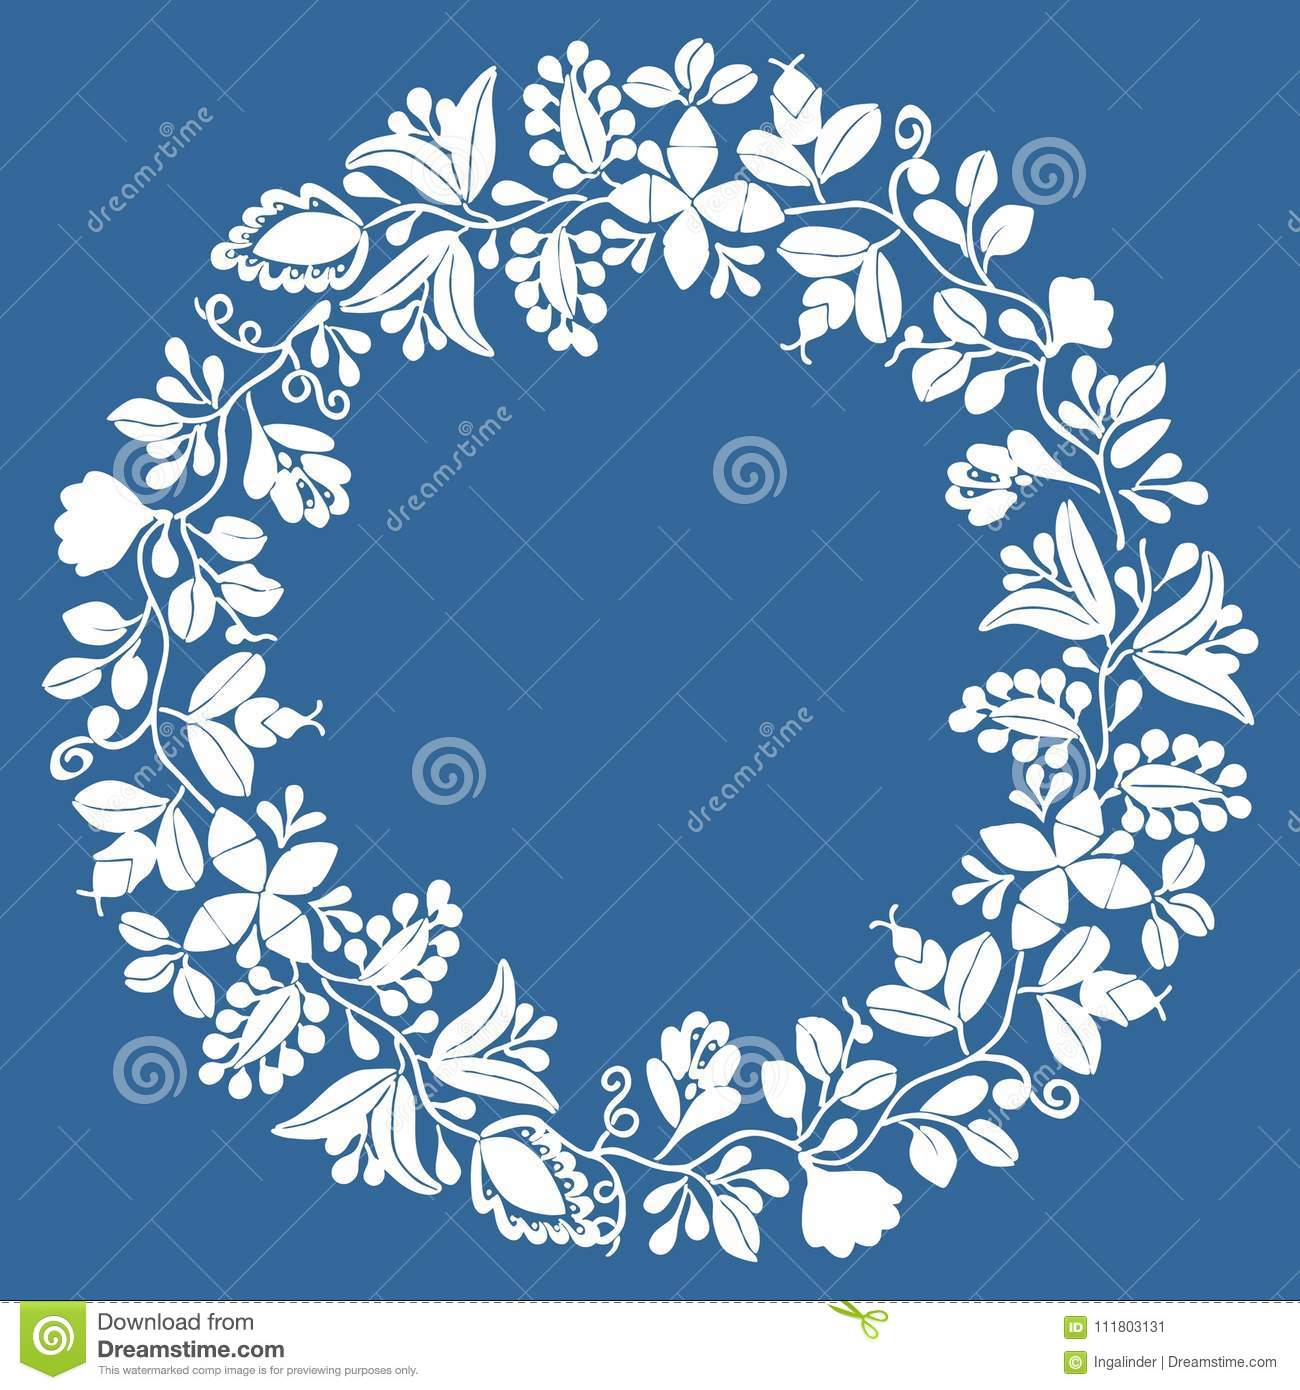 White wreath floral vector frame isolated on navy blue background